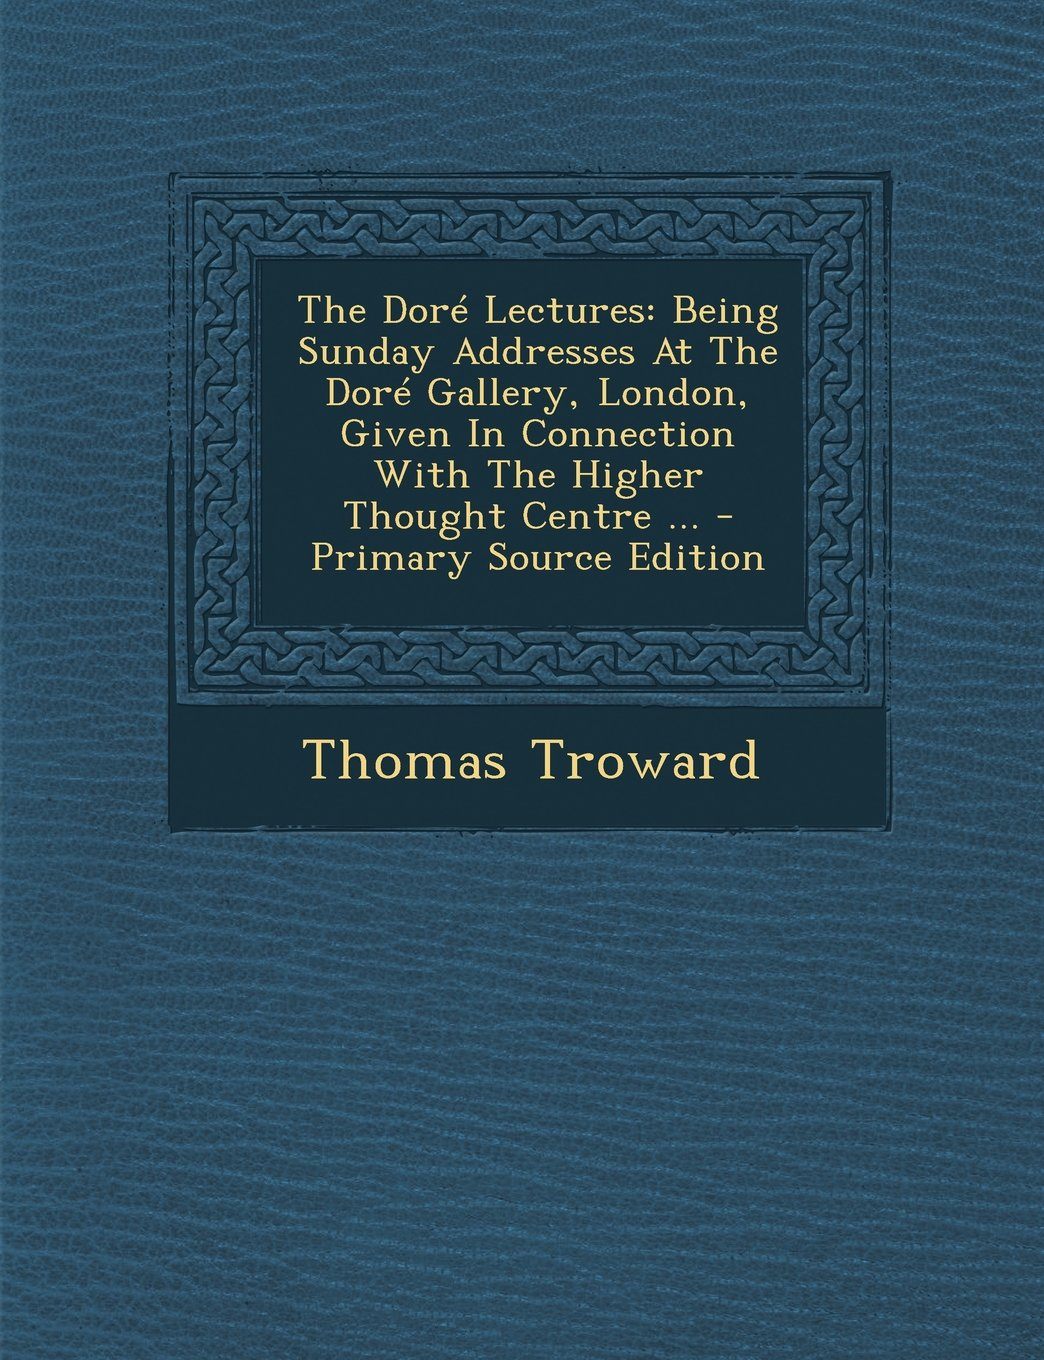 Download The Dore Lectures: Being Sunday Addresses at the Dore Gallery, London, Given in Connection with the Higher Thought Centre ... - Primary S pdf epub